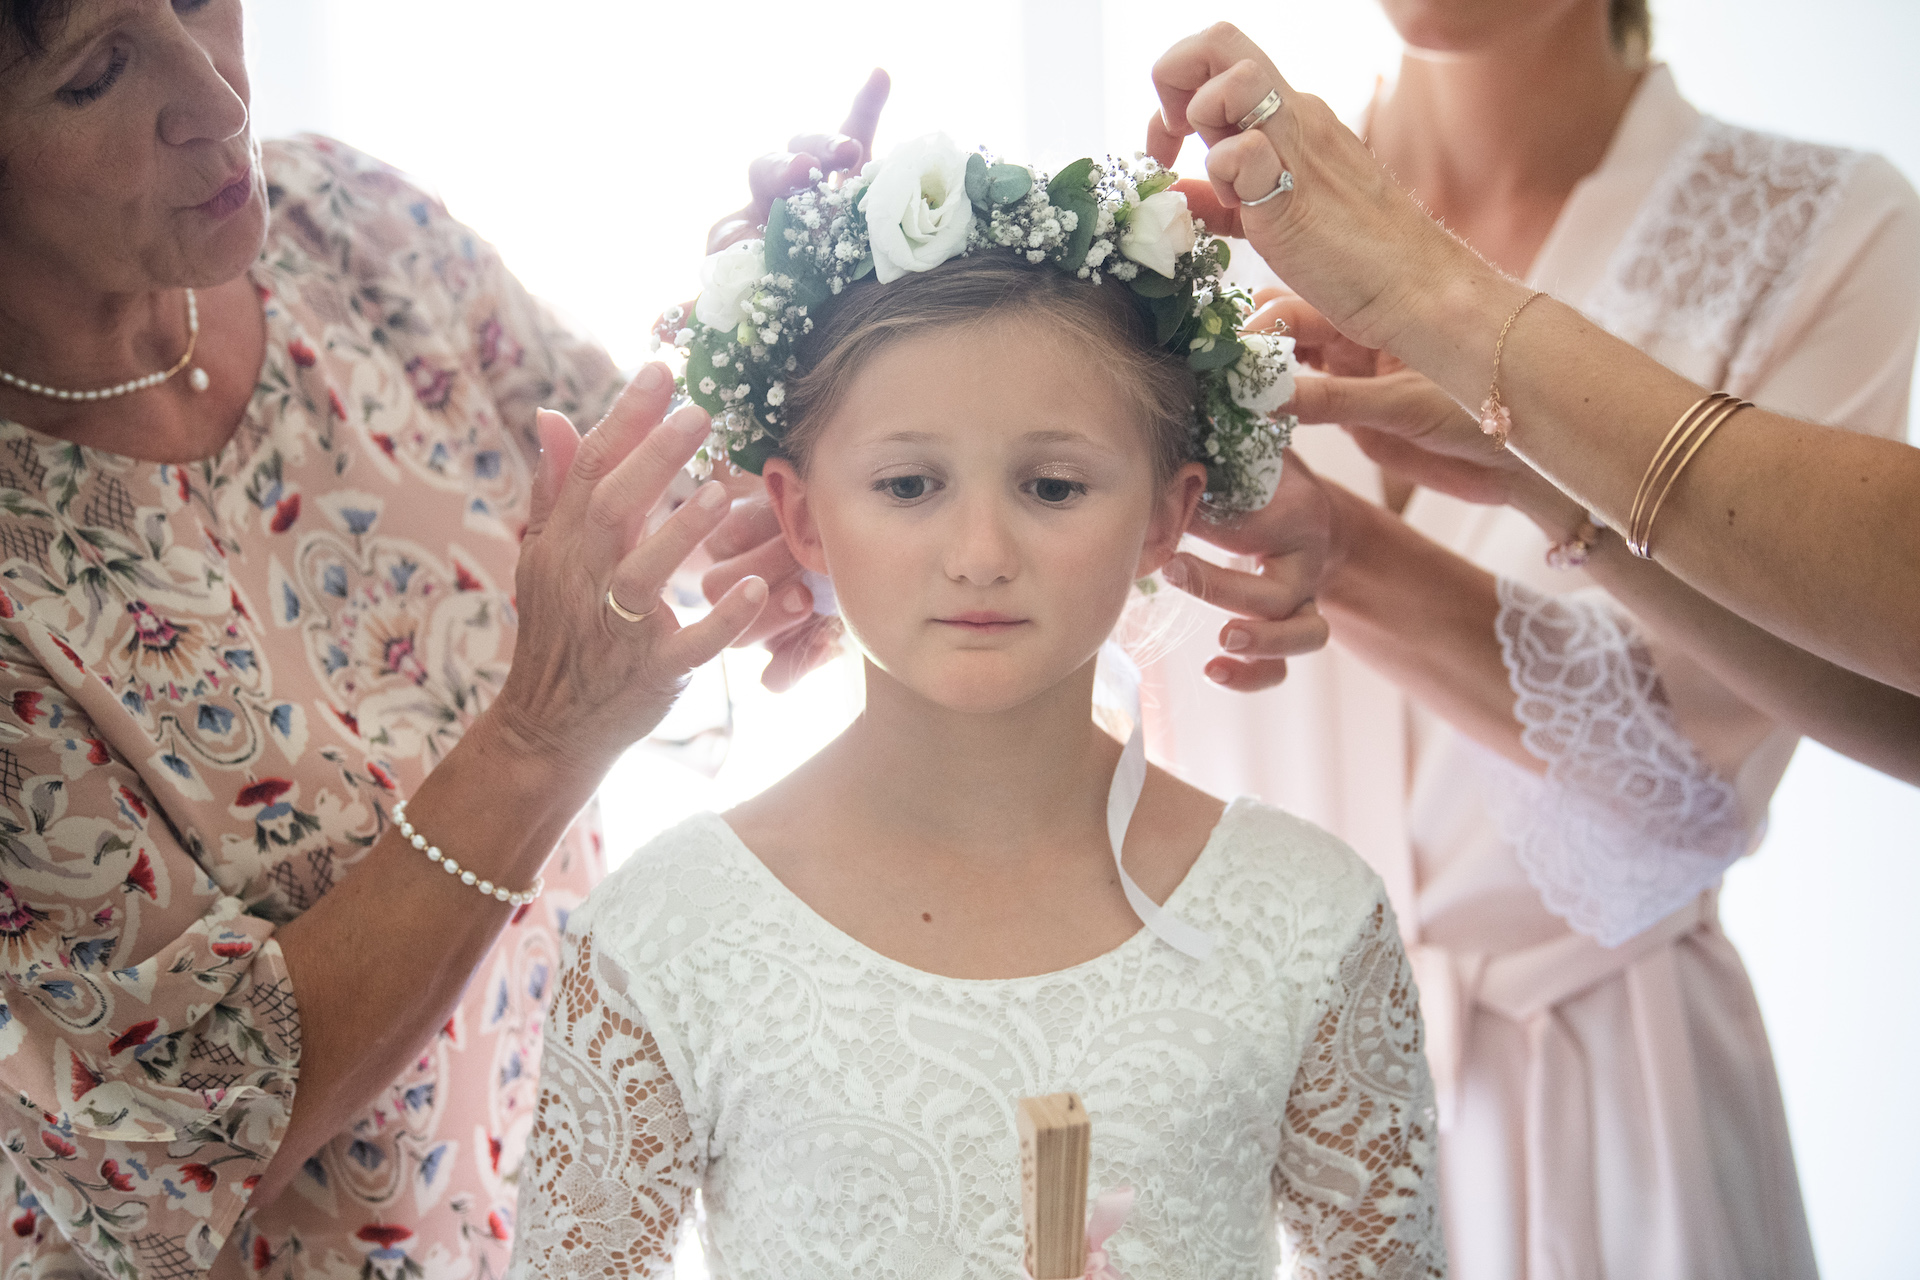 Photo of getting ready of young flower girl child with flowers in her hair